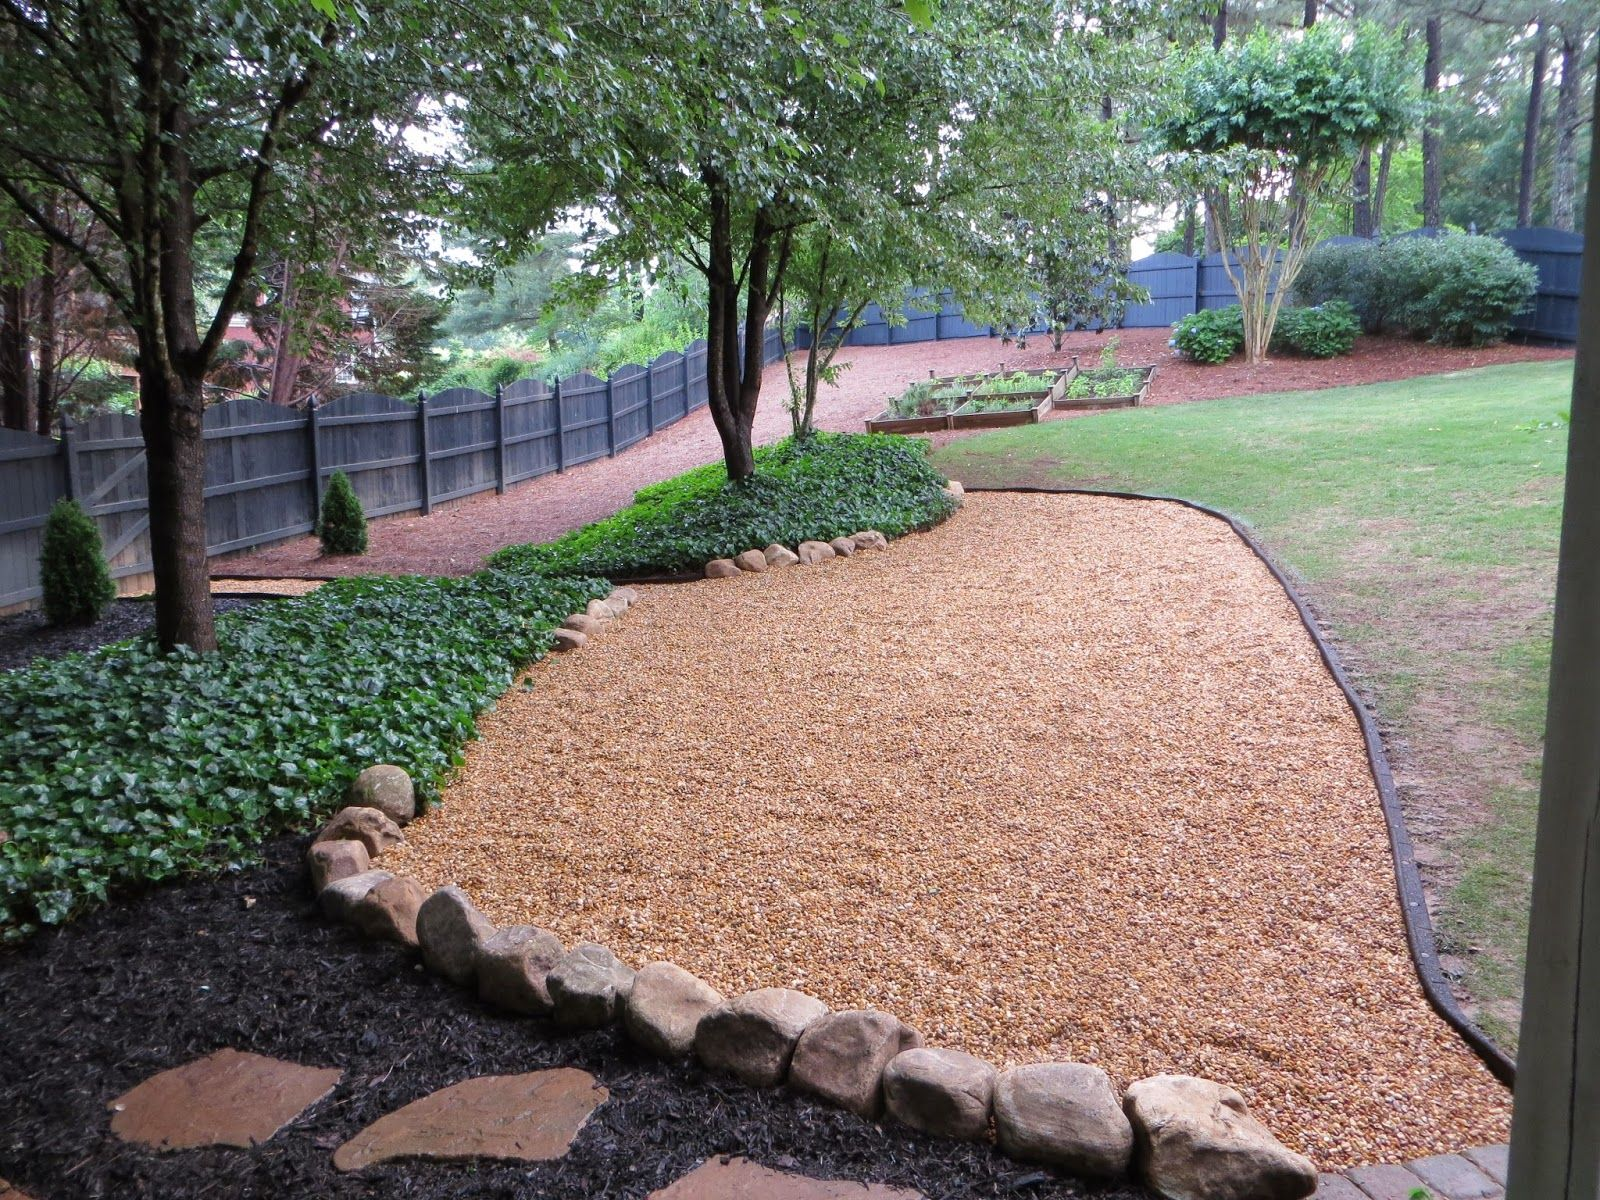 Pea gravel and stone seating new pea gravel patio area for Garden ideas for patio areas